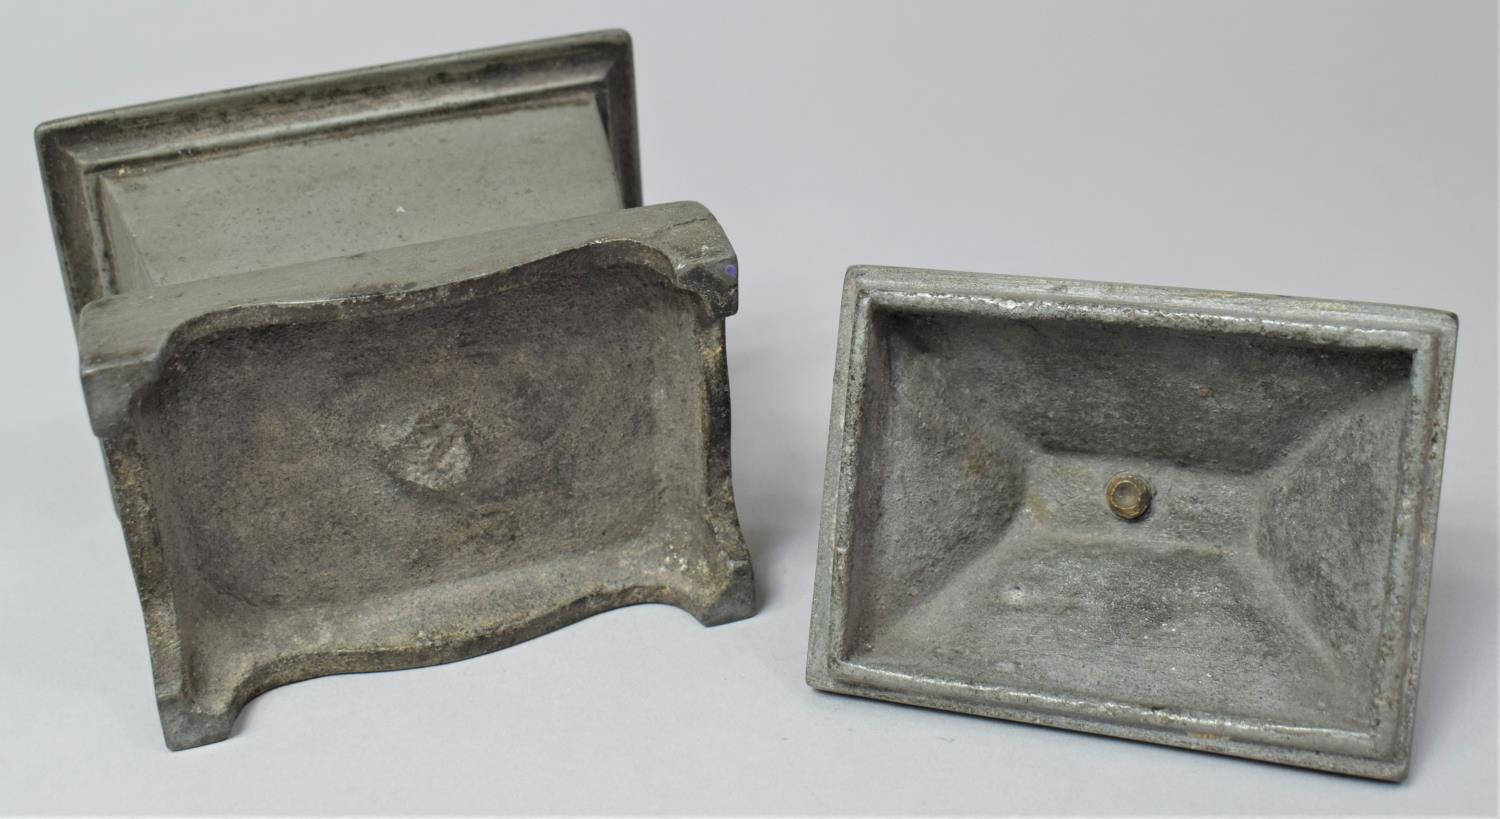 A 19th Century Lead Tobacco Box of Sarcophagus Form, 11cm Wide - Image 6 of 6